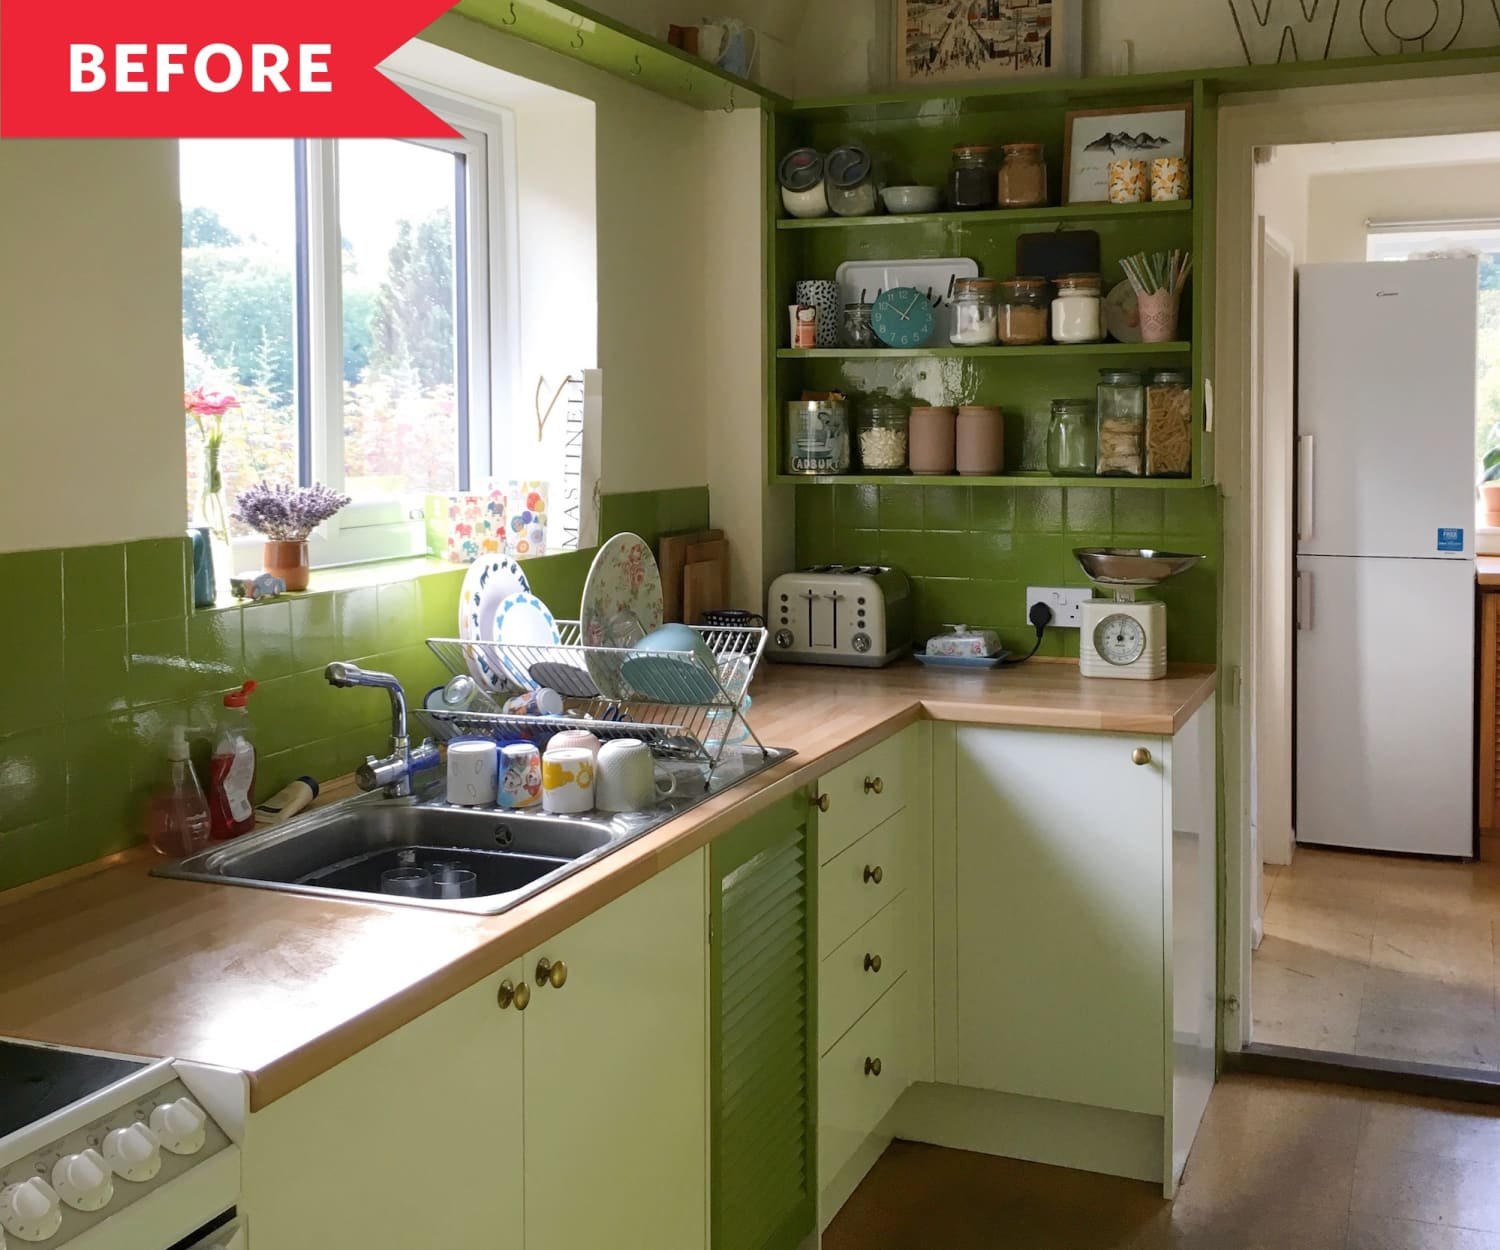 Before & After: This Lime-Green Kitchen Gets a Bright Budget Redo